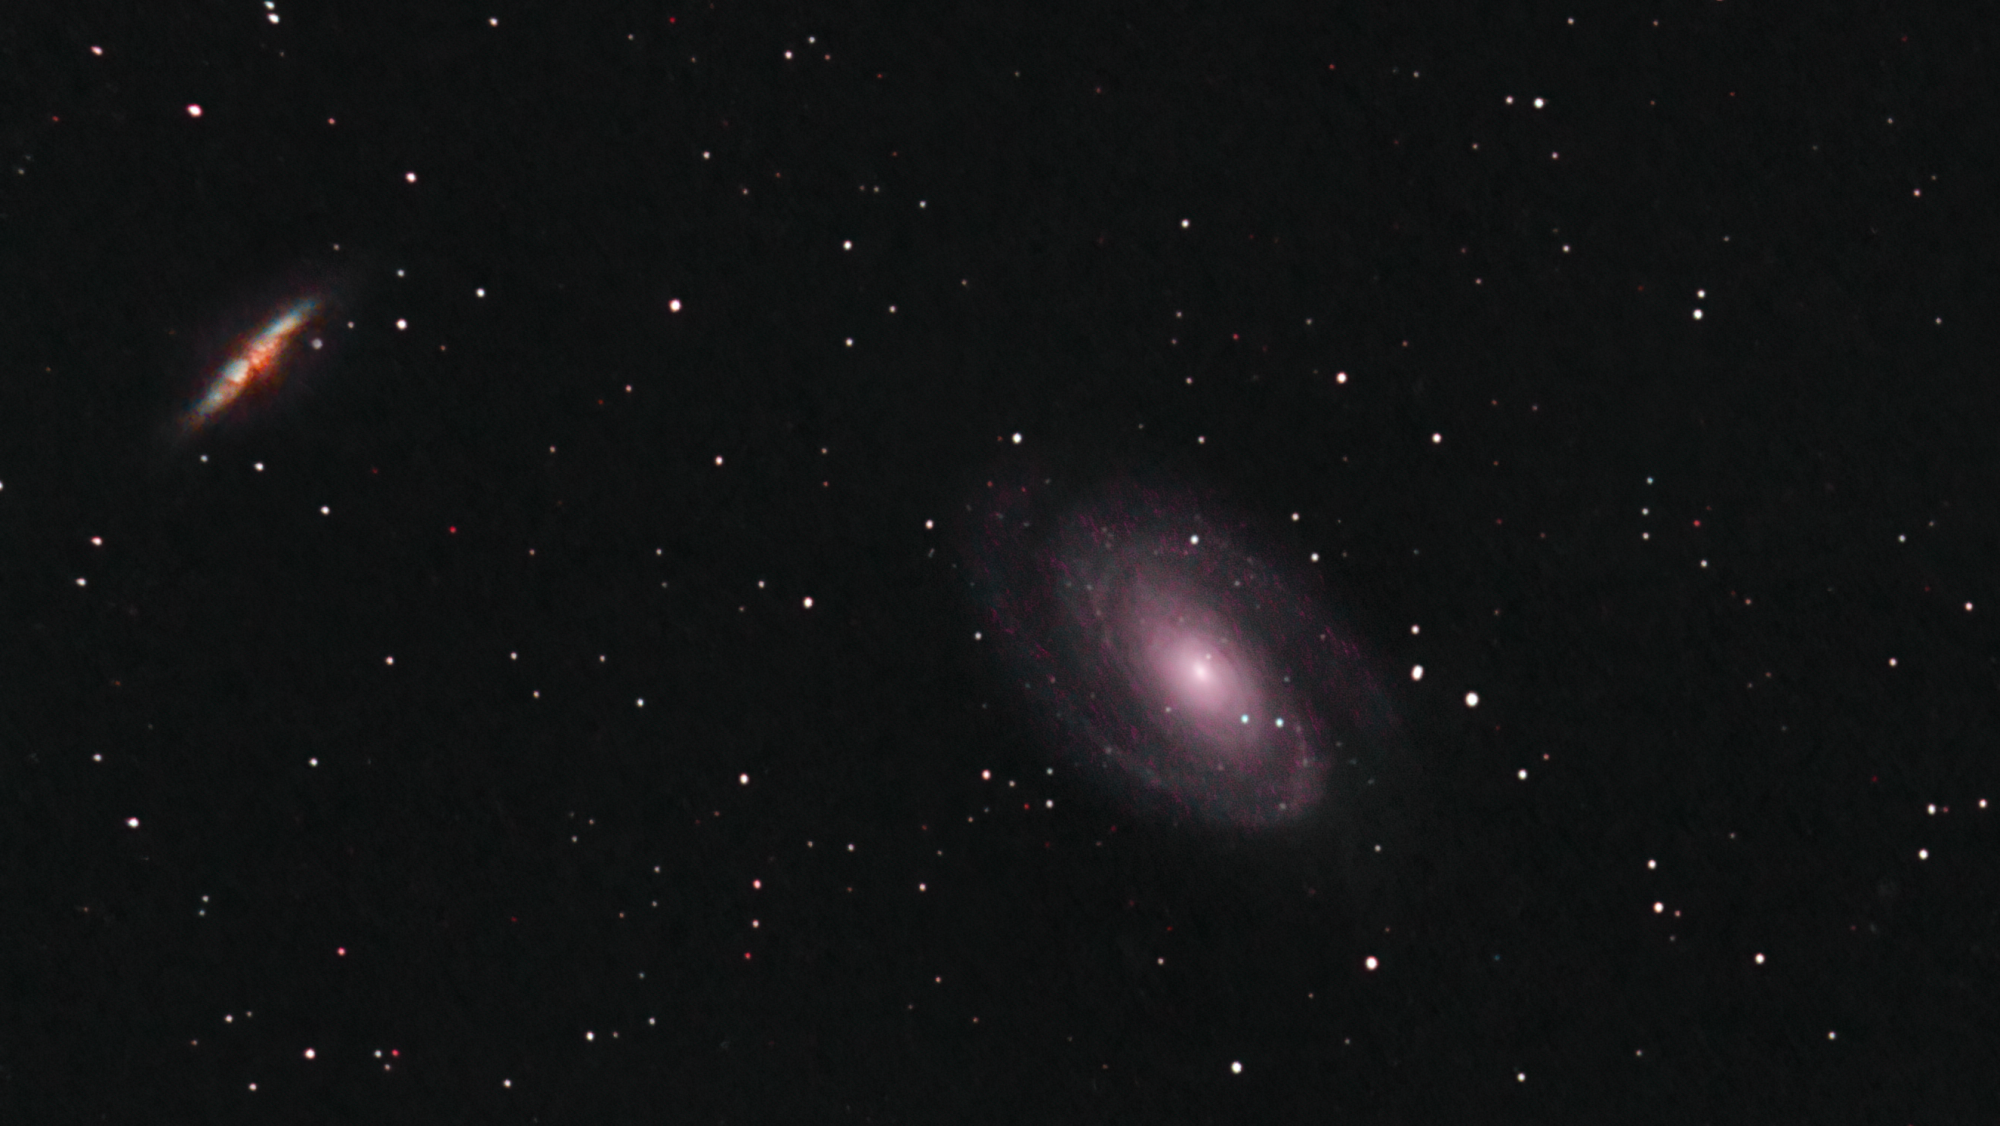 r_pp_Galaxie Bode M81 39x300s ISO800_stacked_proccessed_TIFF for PS - V3.5 - detail.png